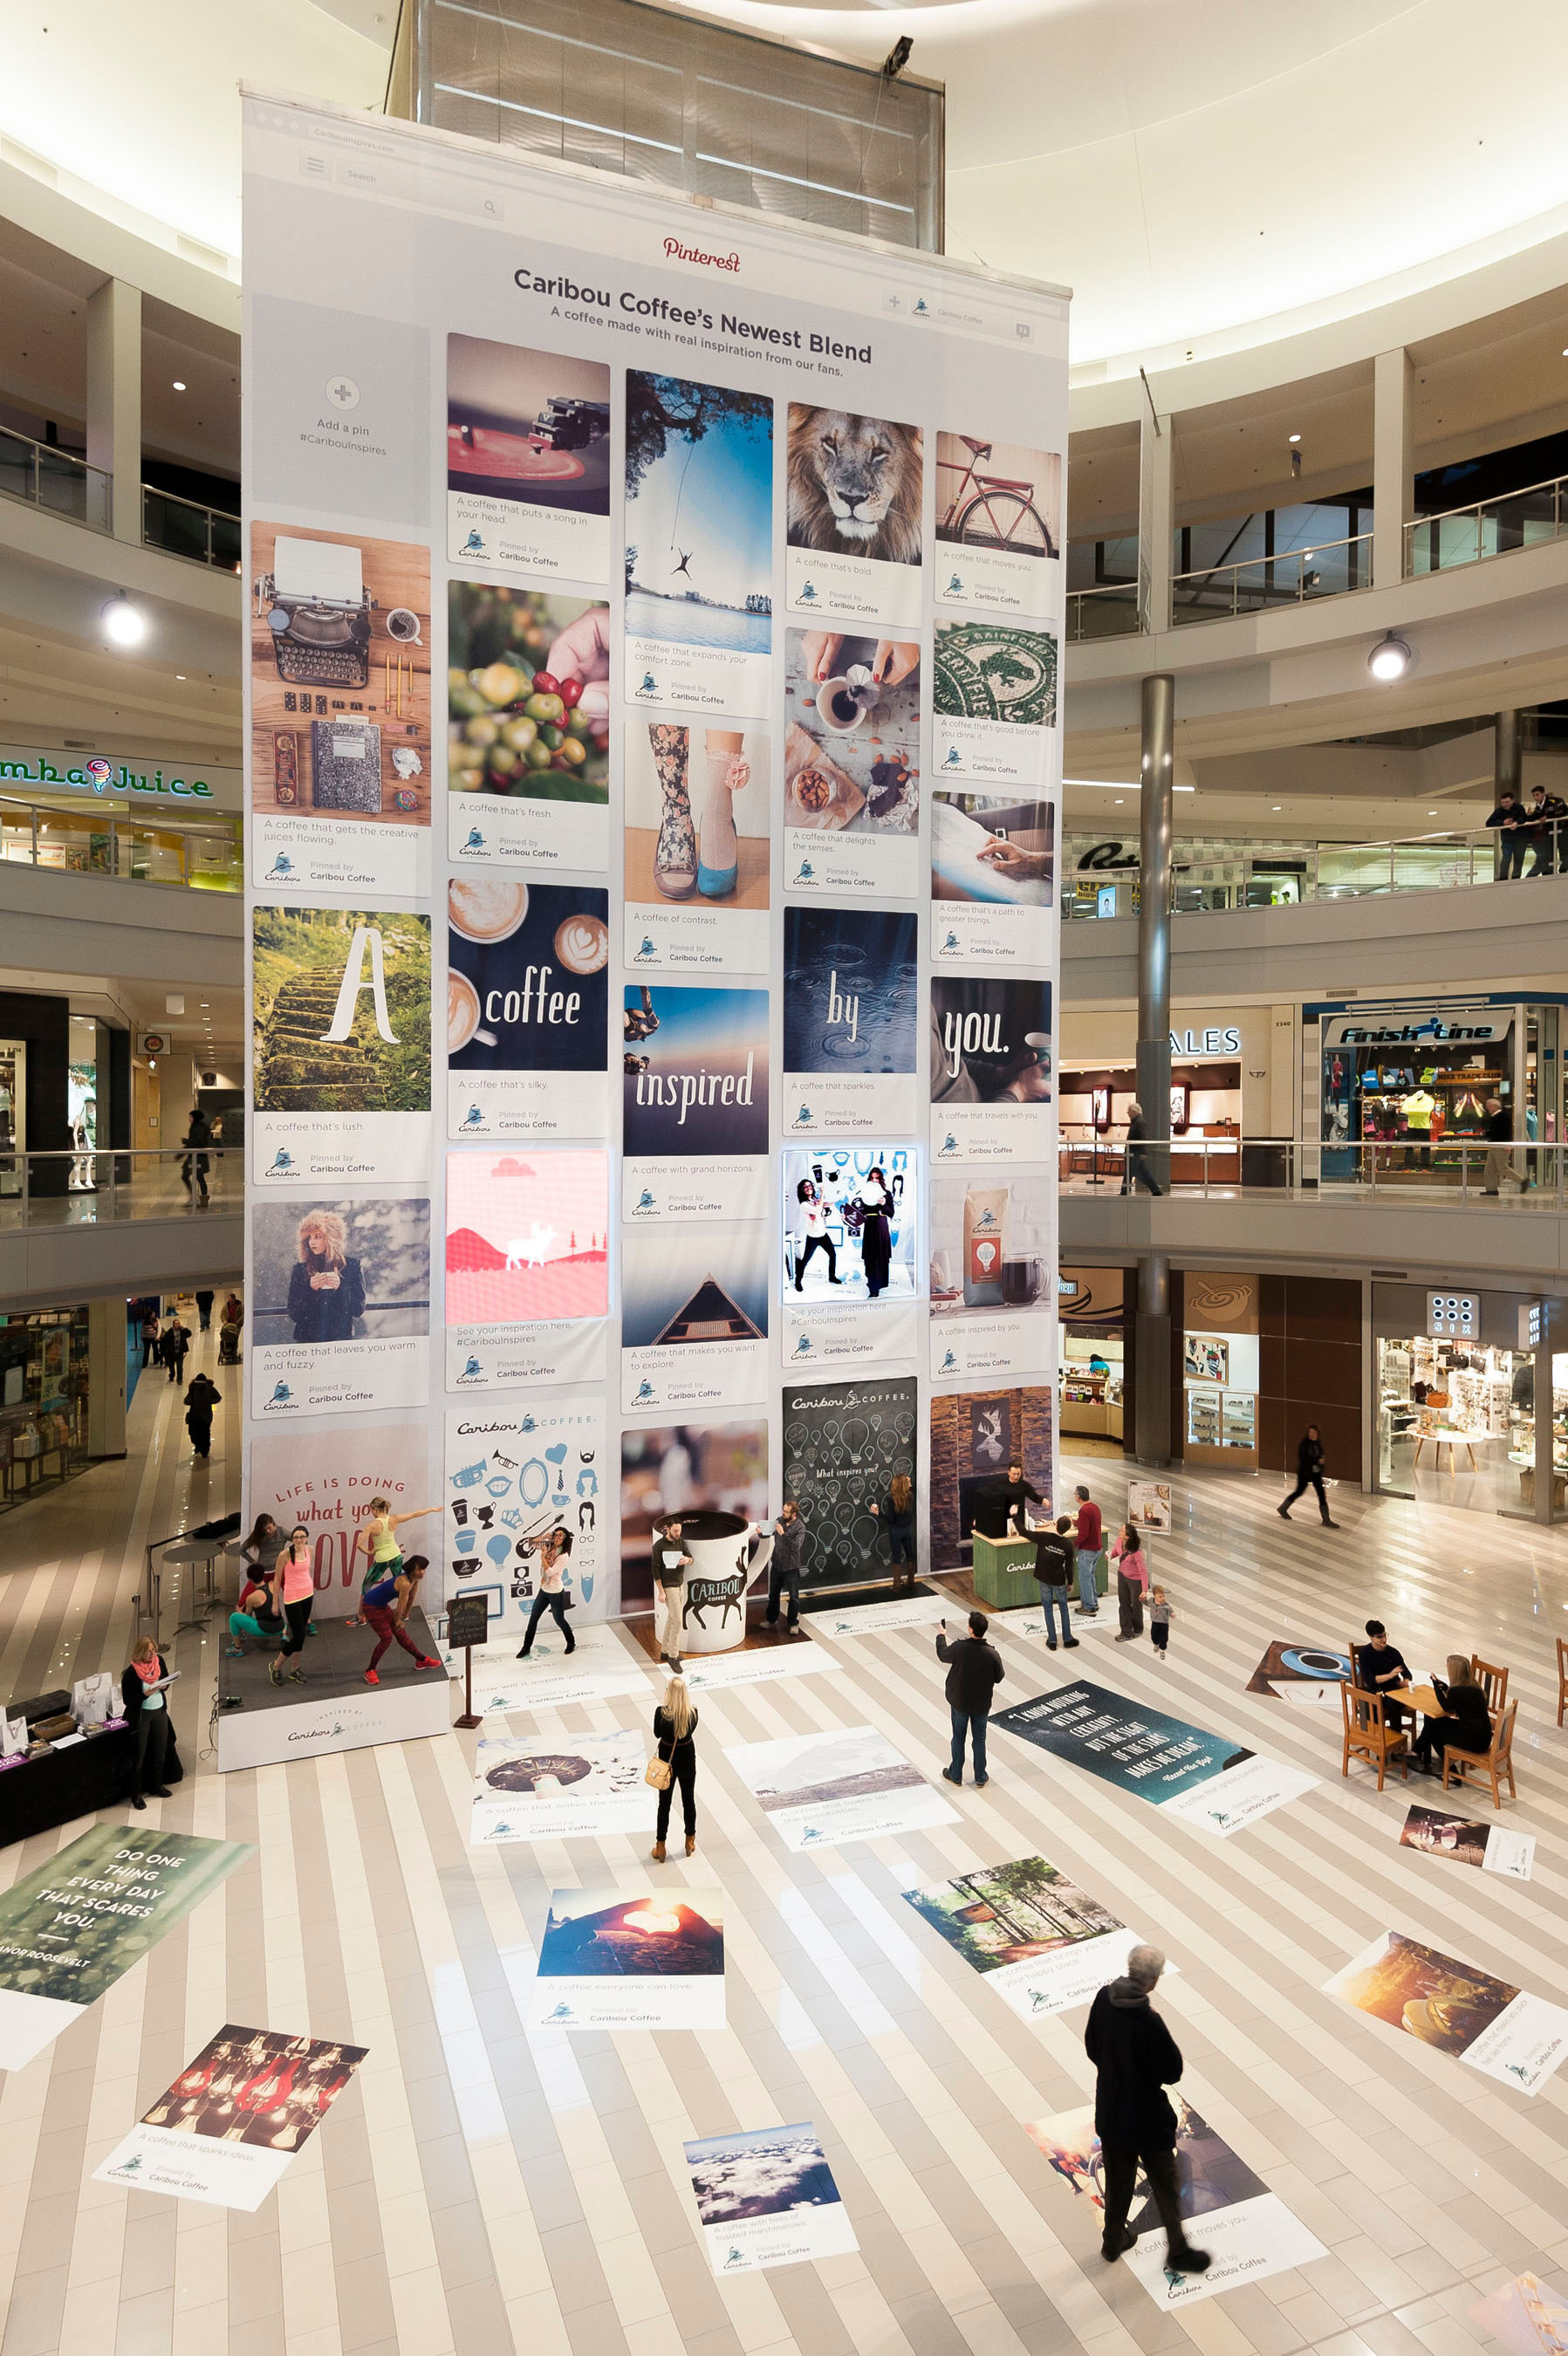 Caribou Coffee Celebrates Launch of Real Inspiration Blend by Creating Larger-Than-Life Pinterest Board inside Mall of America'